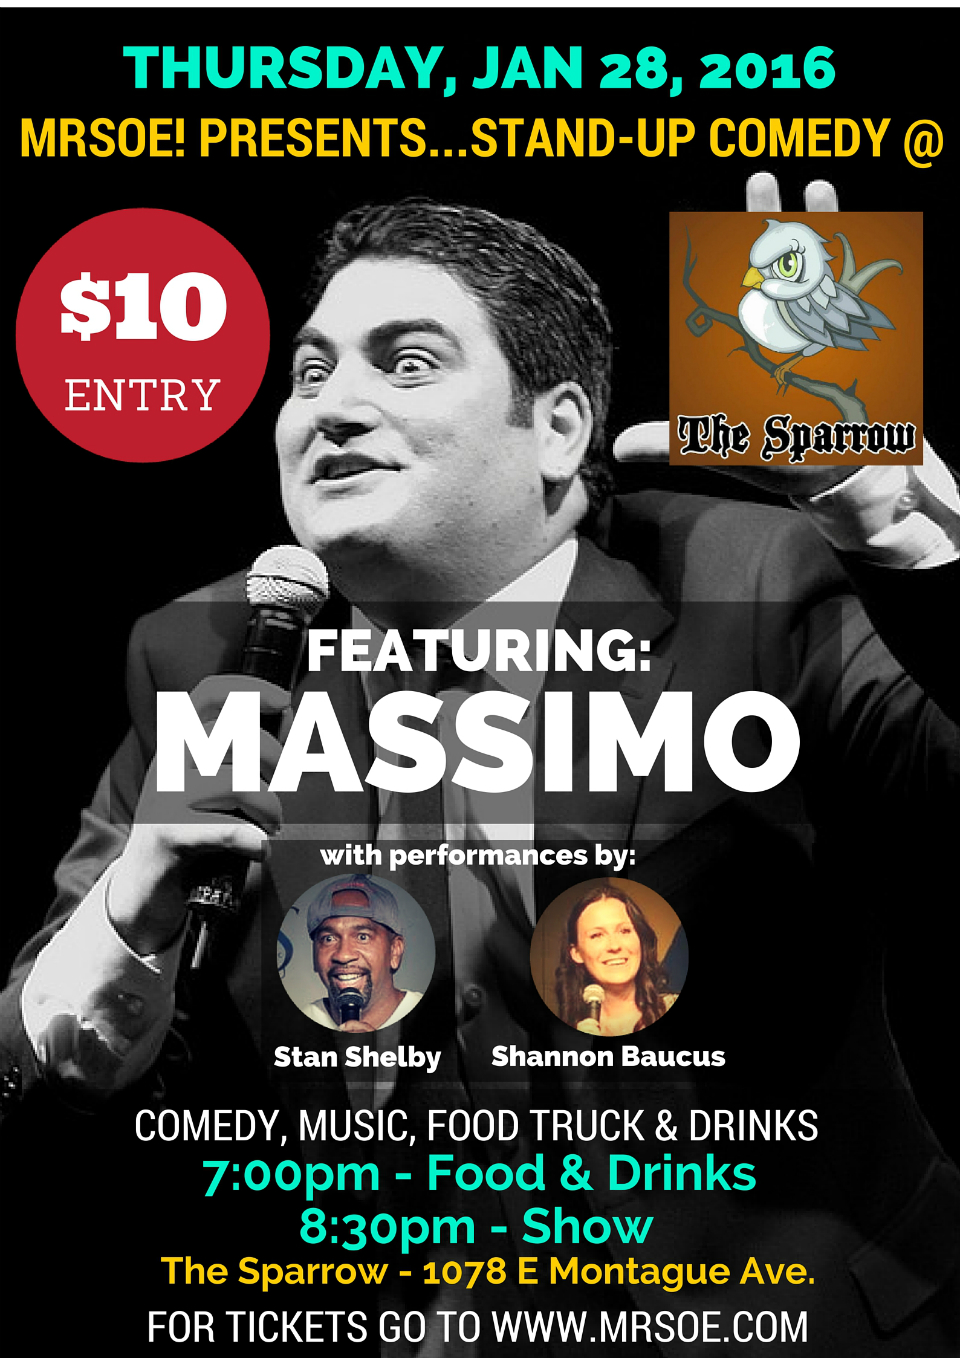 Stand-Up @ The Sparrow Presents...Massimo